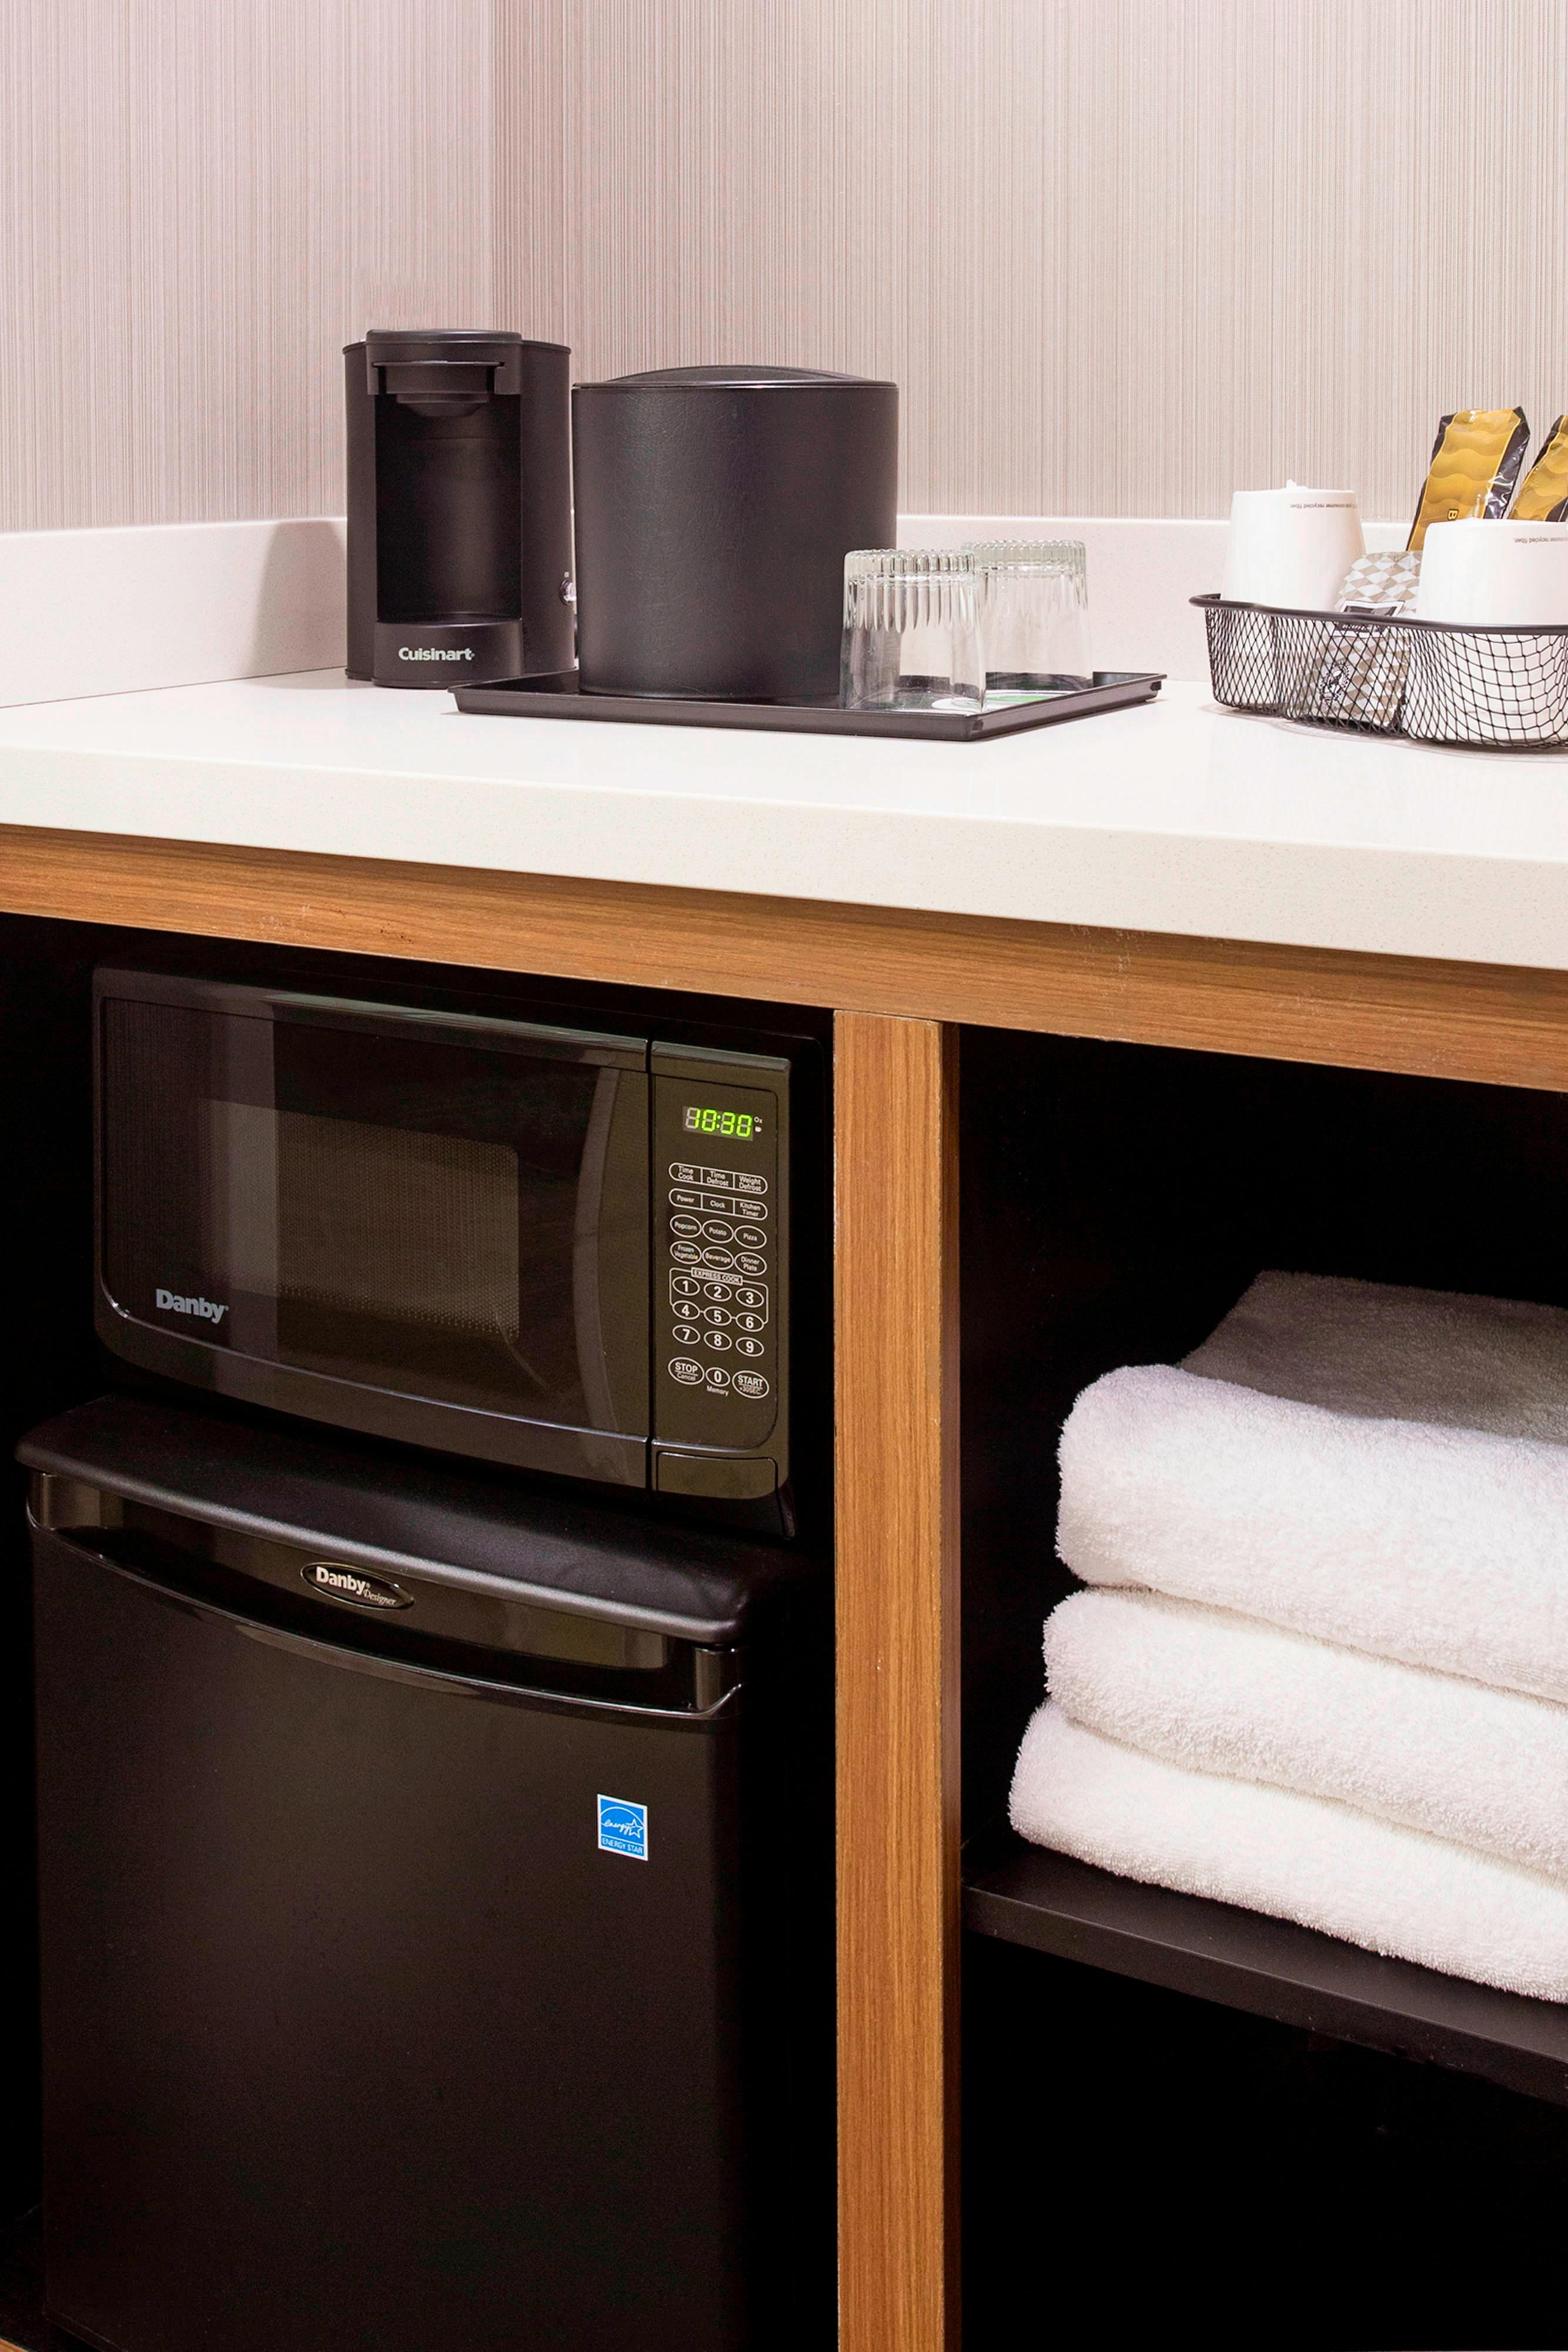 Microwave, refrigerator and coffee maker